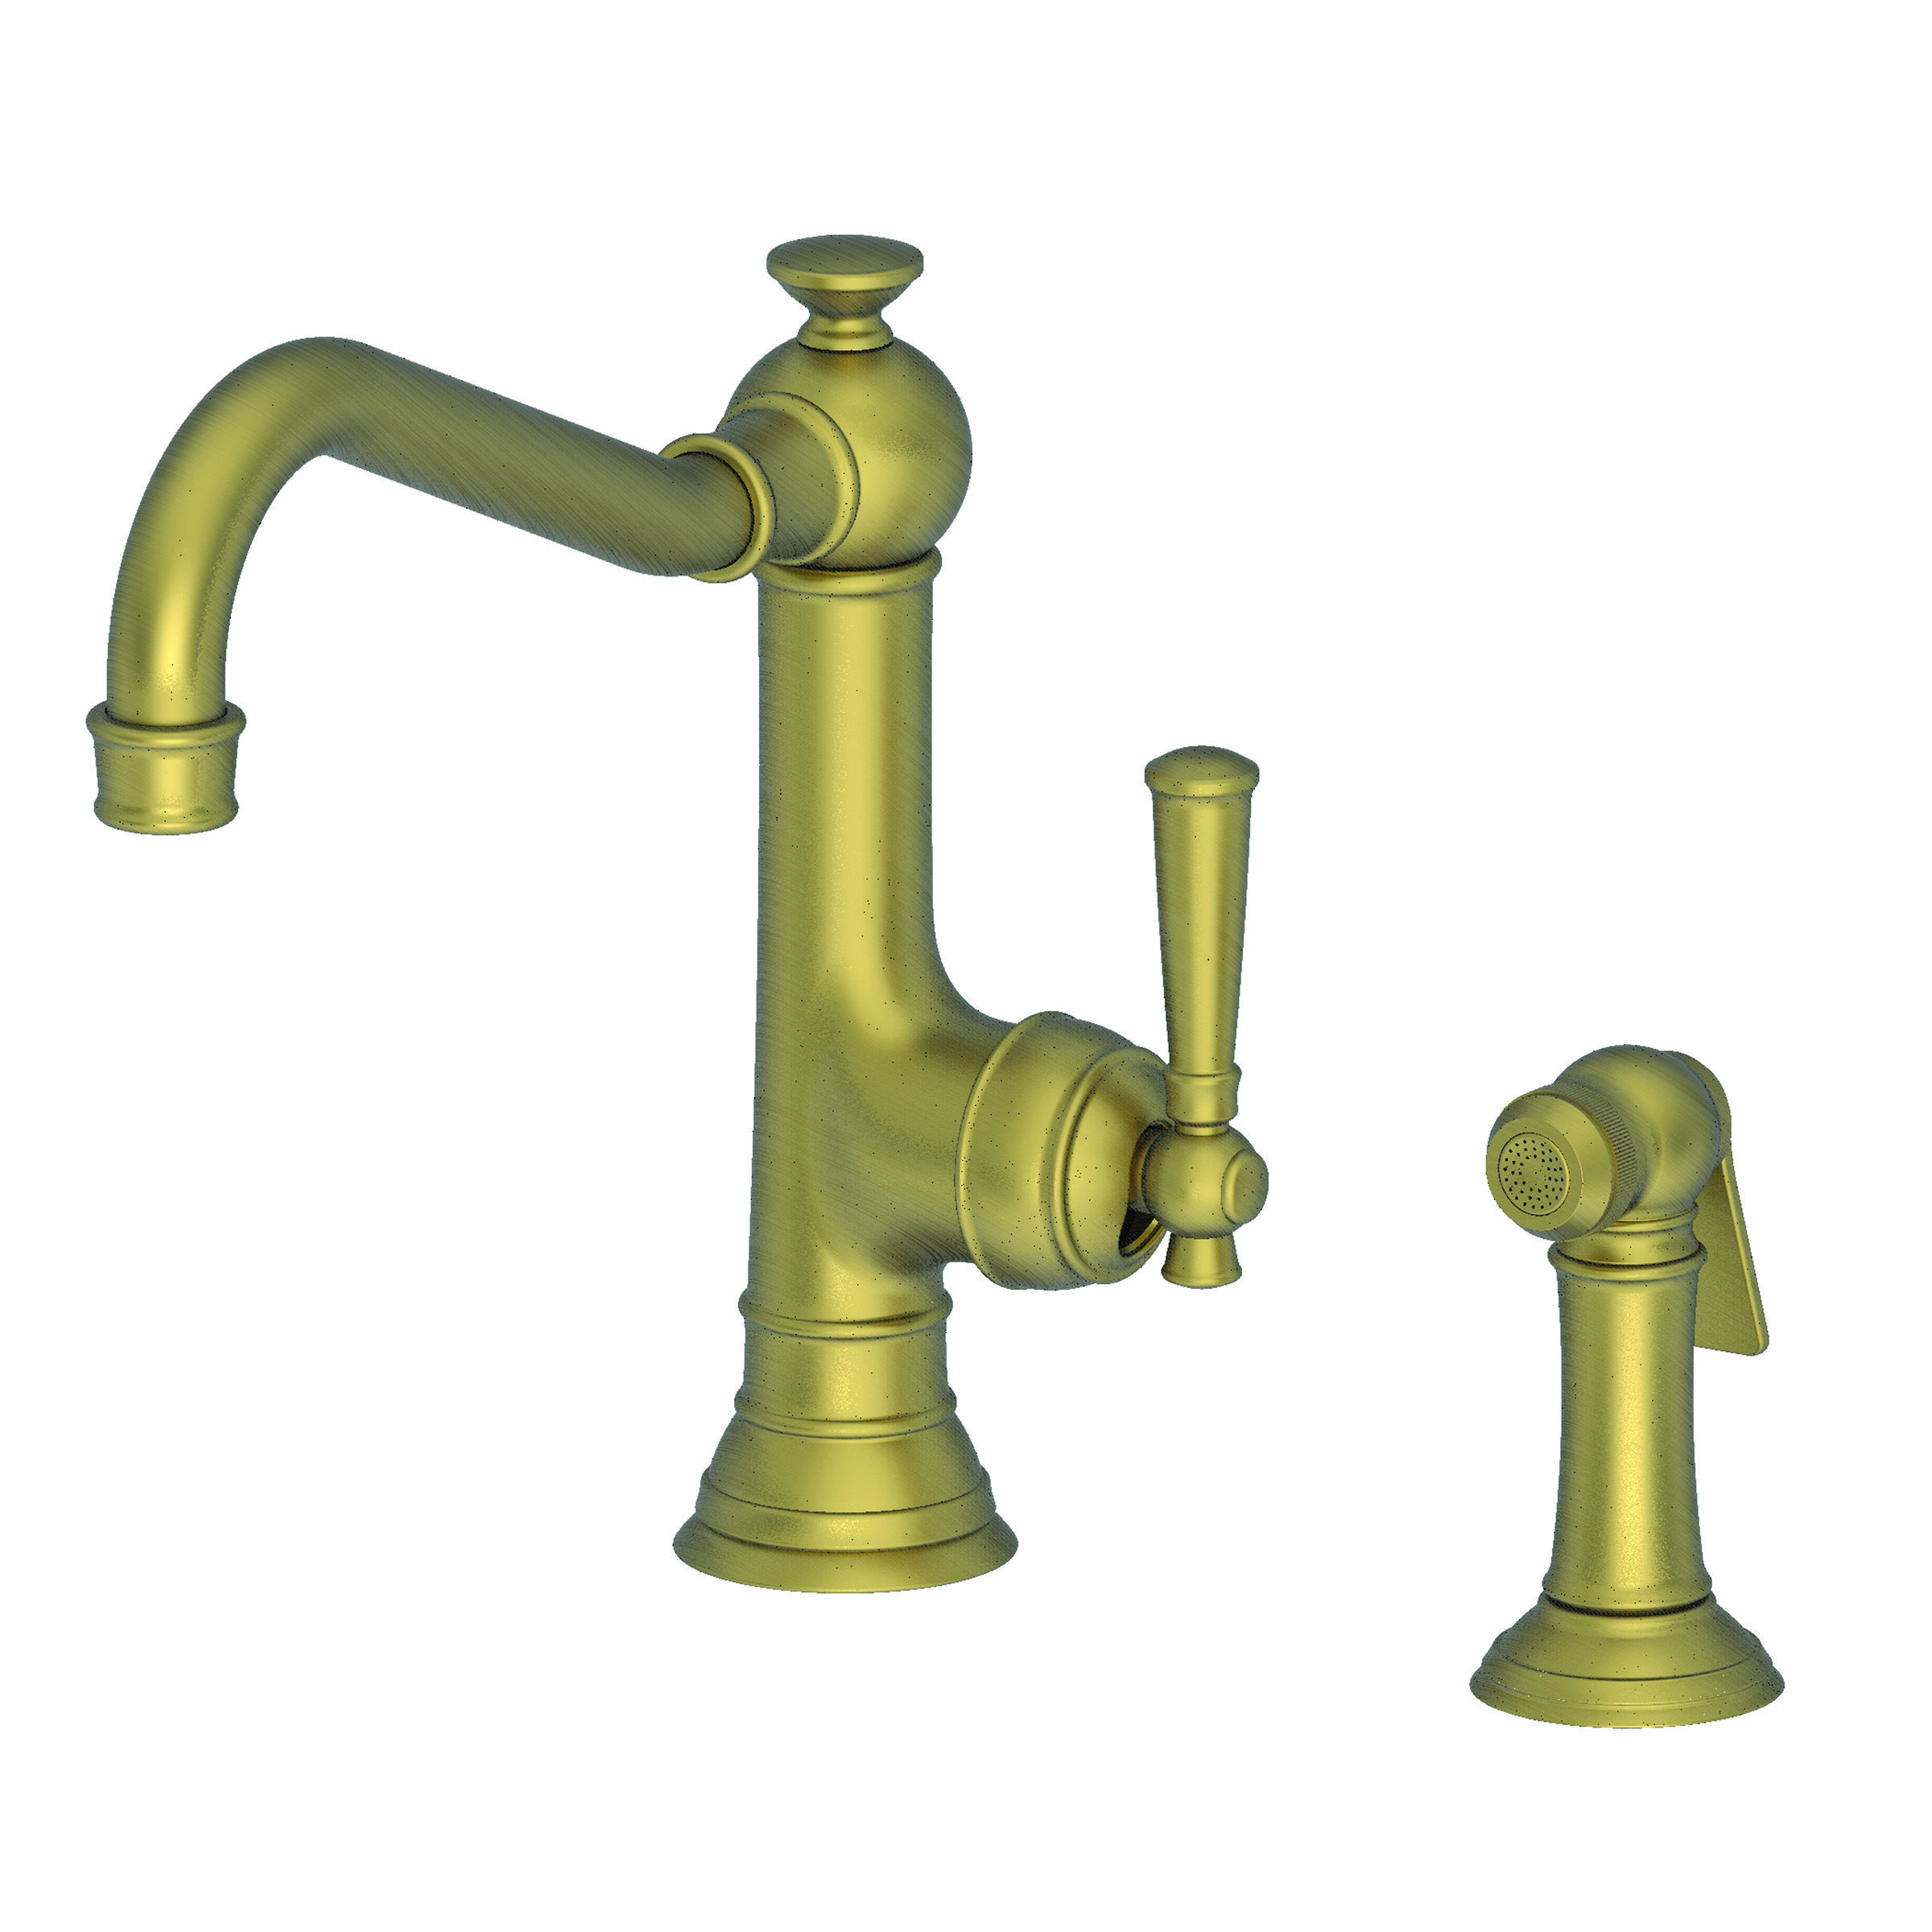 hm rowe aged humphrey longford taps tap antique faucet brass munson perrin by